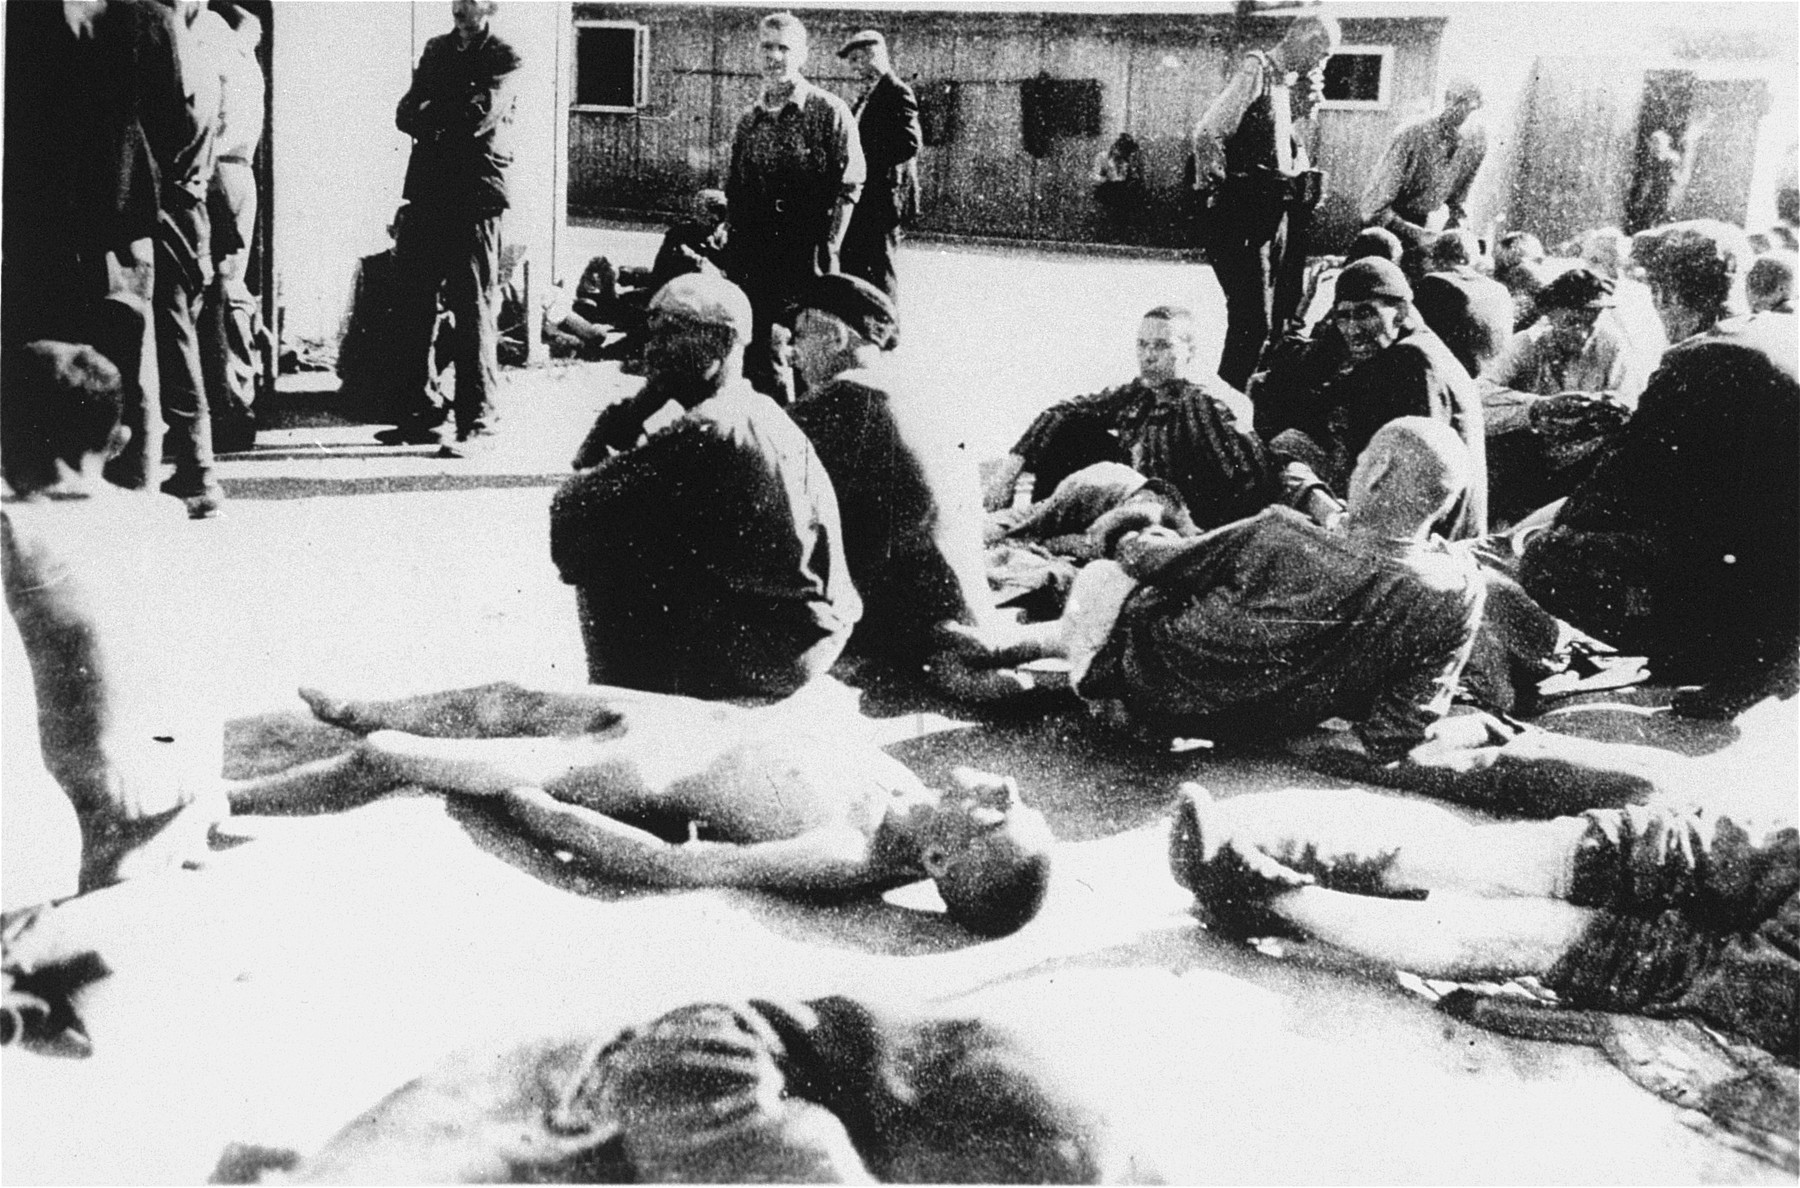 Survivors in Mauthausen after liberation.